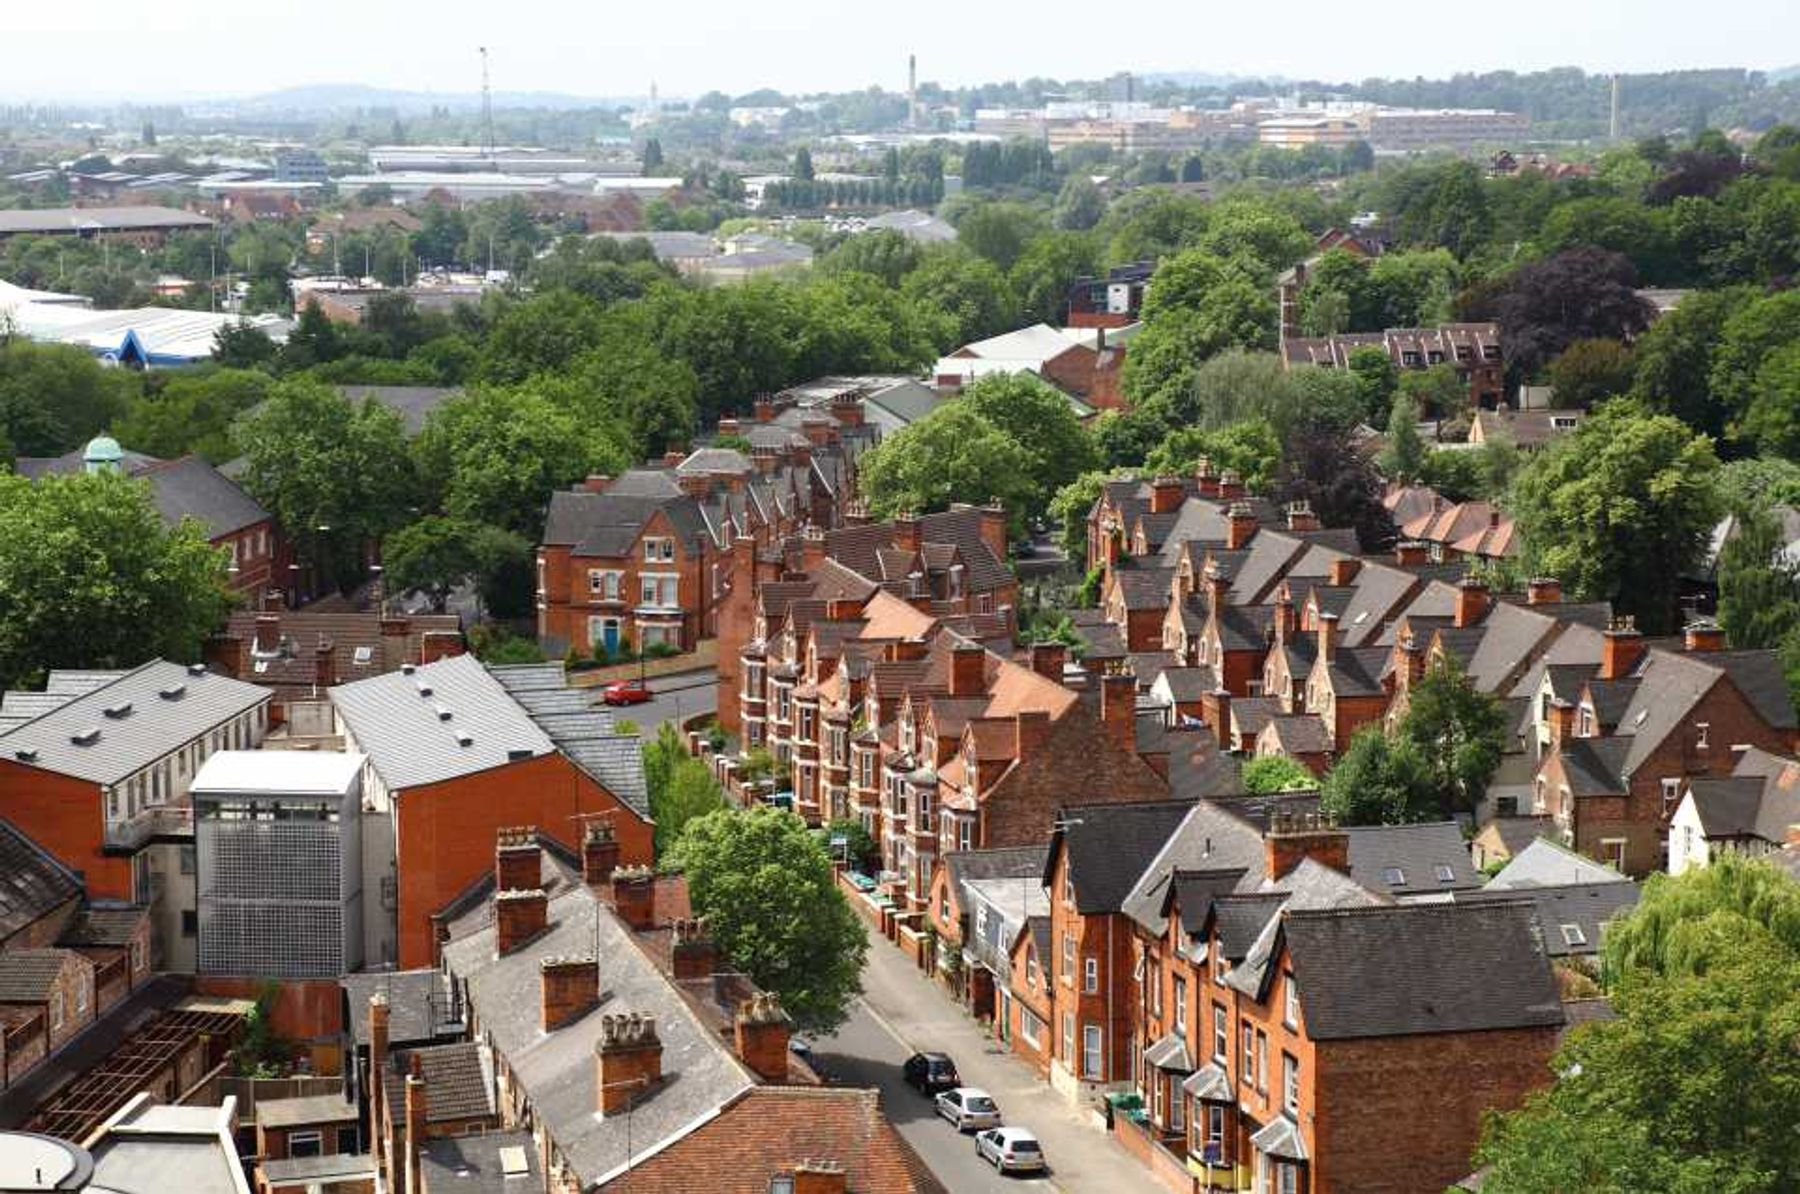 Aerial view of residential street in Nottingham, England